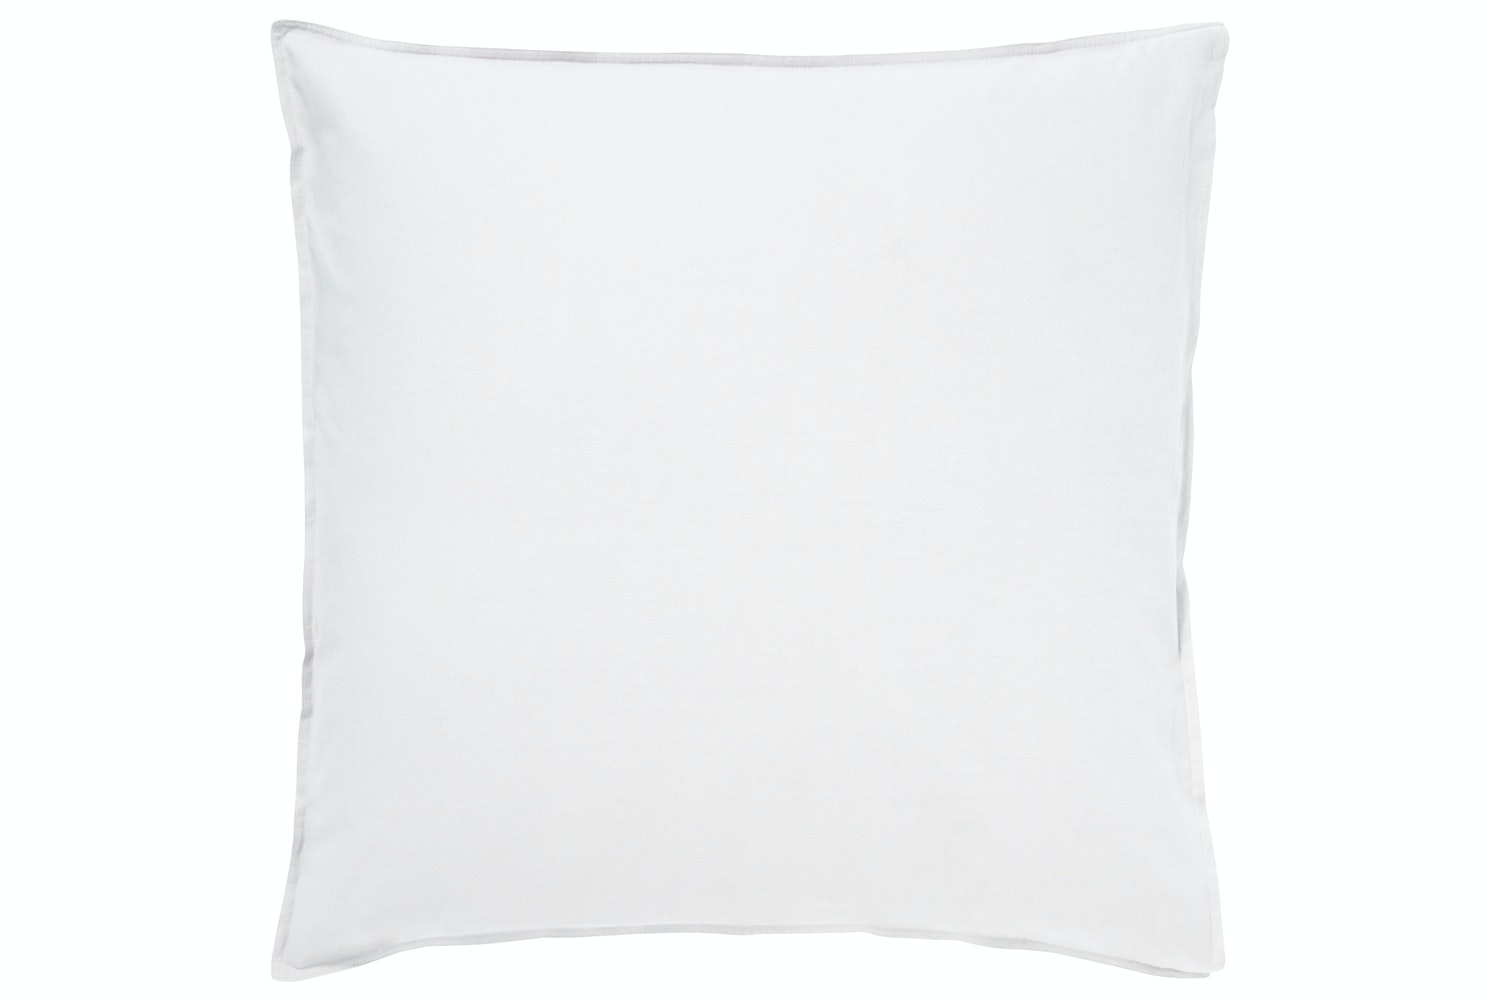 Murmur 'Still' White Square  Pillowcase